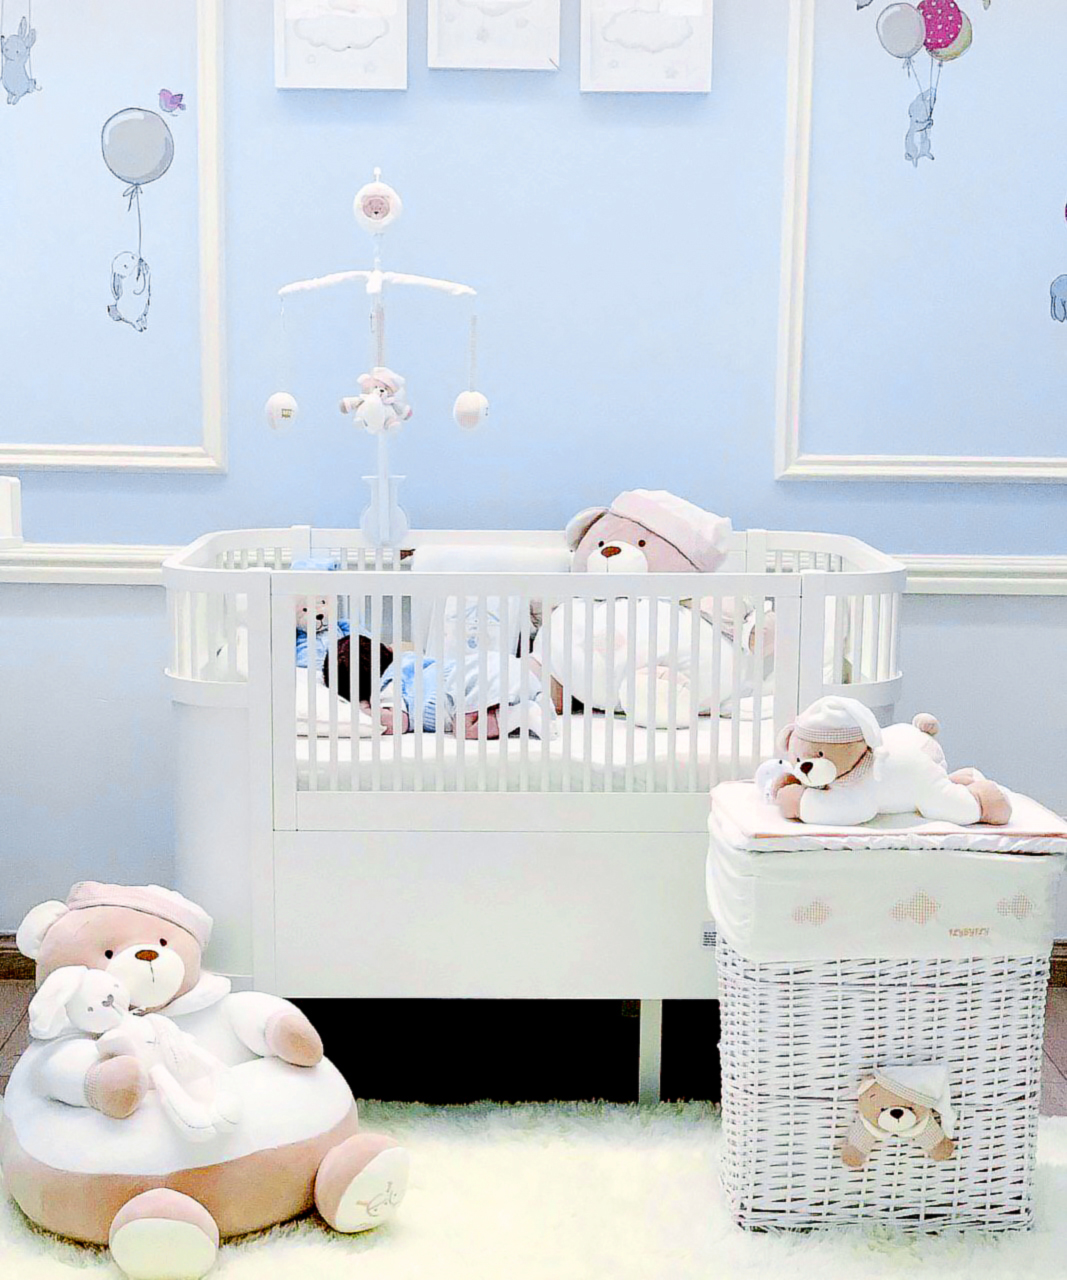 FLYBYFLY   Premium Quality Baby and Kids Products   New Arrivals